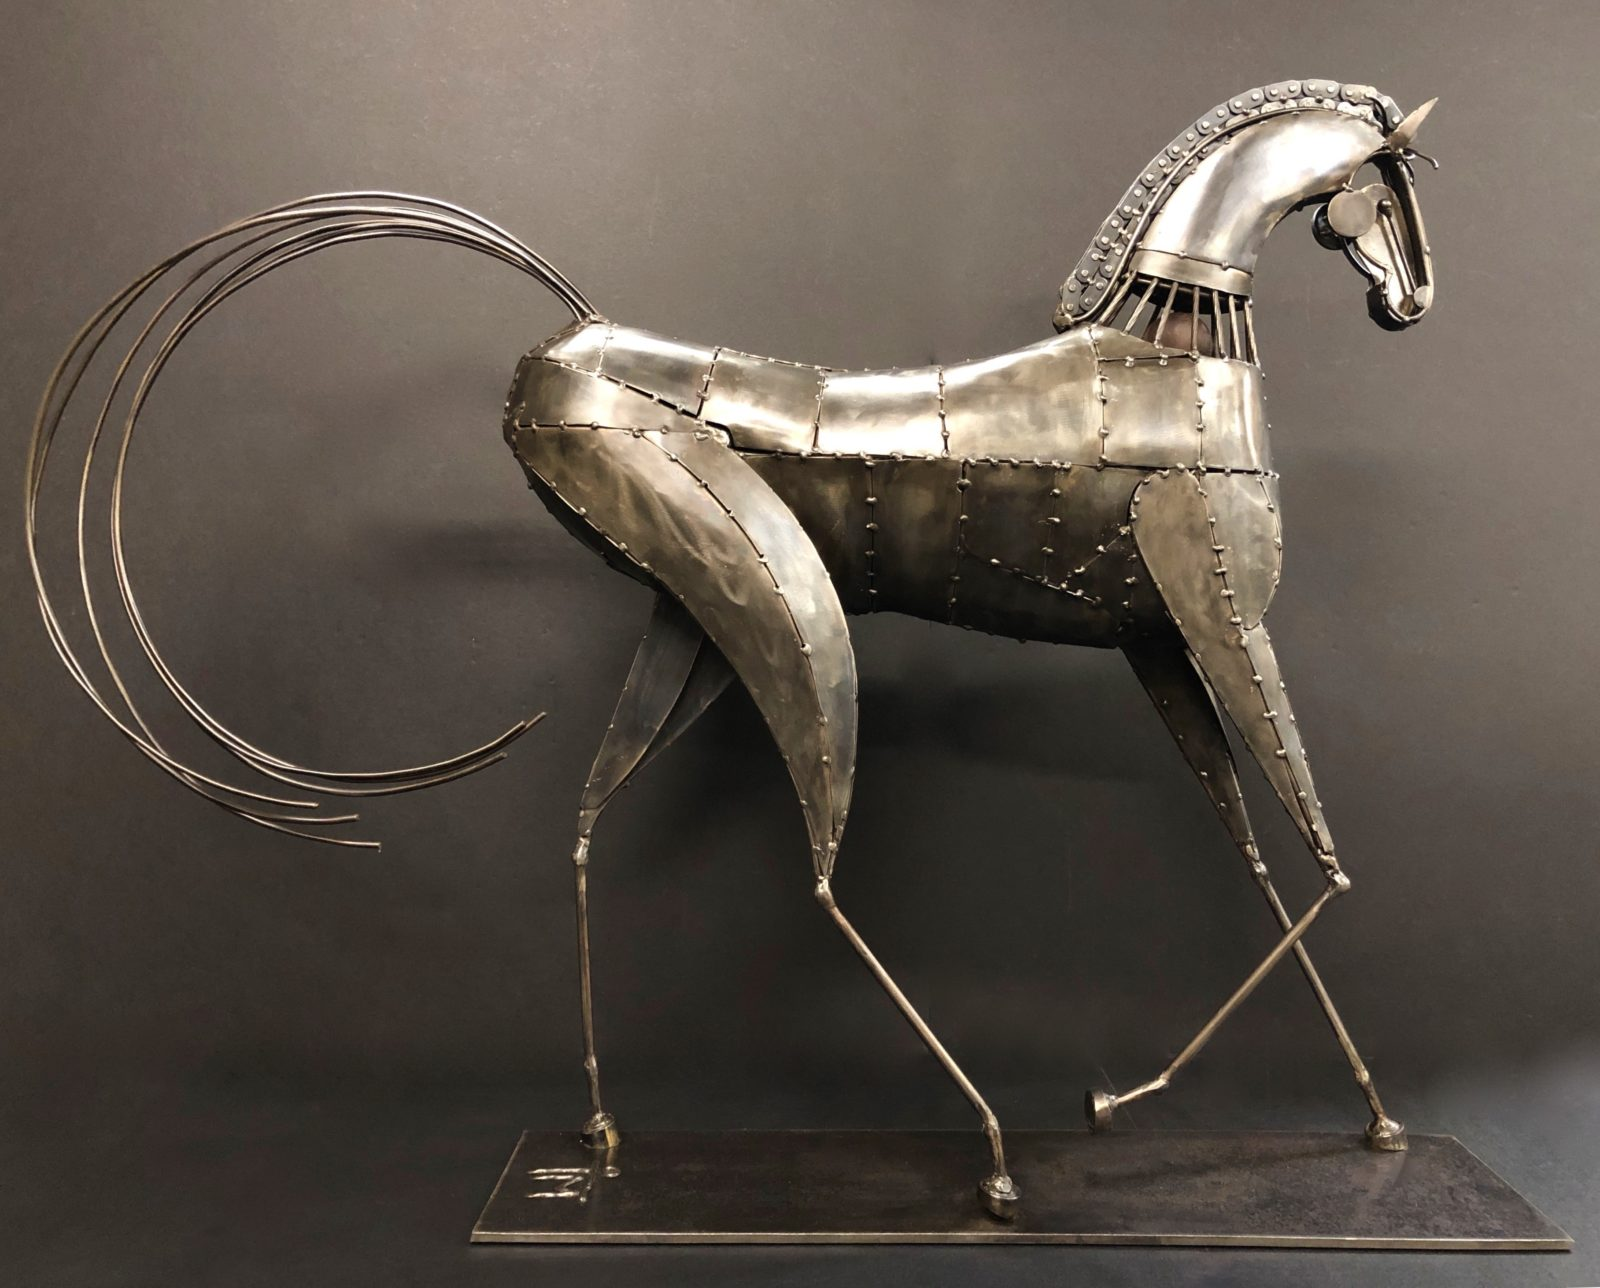 The Tennessee Stud metal sculpture